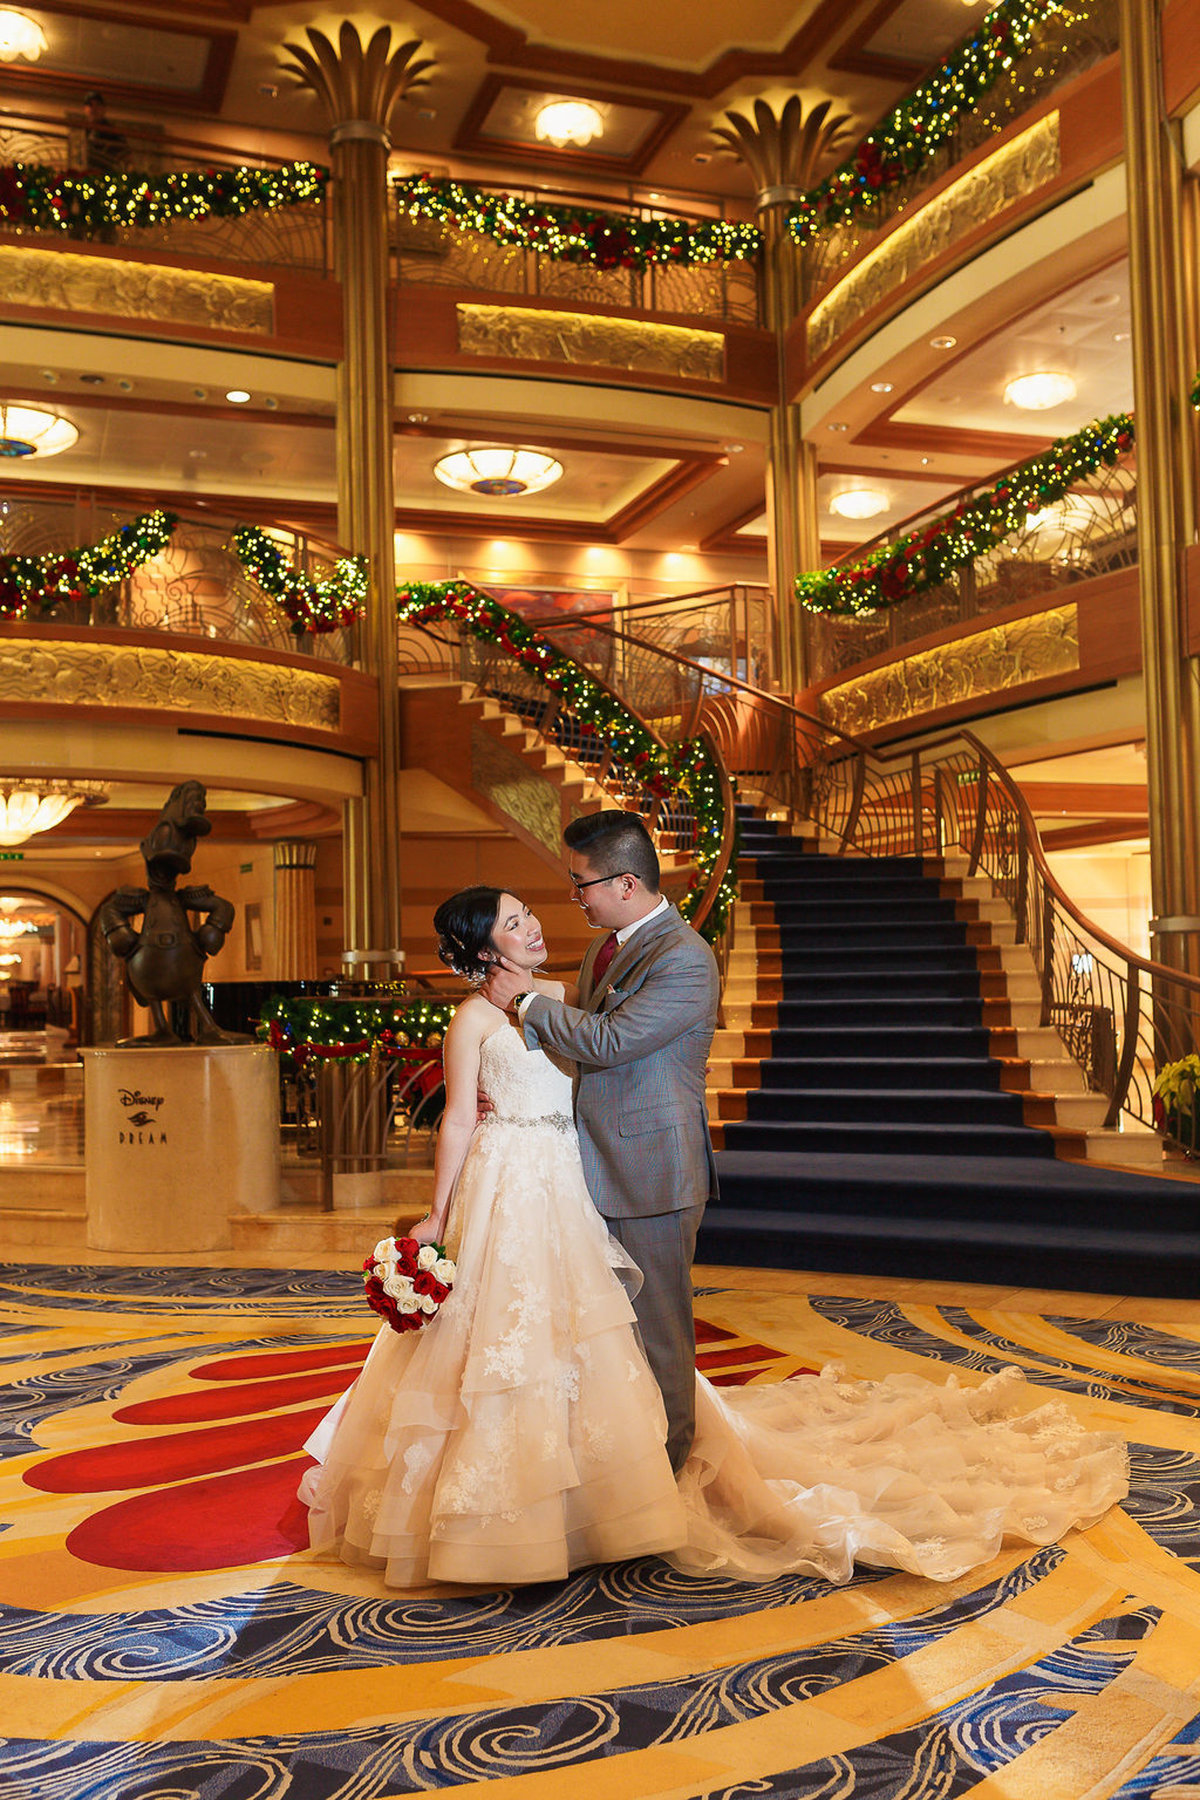 Disney-Cruise-Bride-Disney-Dream-On-Board-Wedding-Nassau-Bahamas-Jessica-Lea-IMG-180